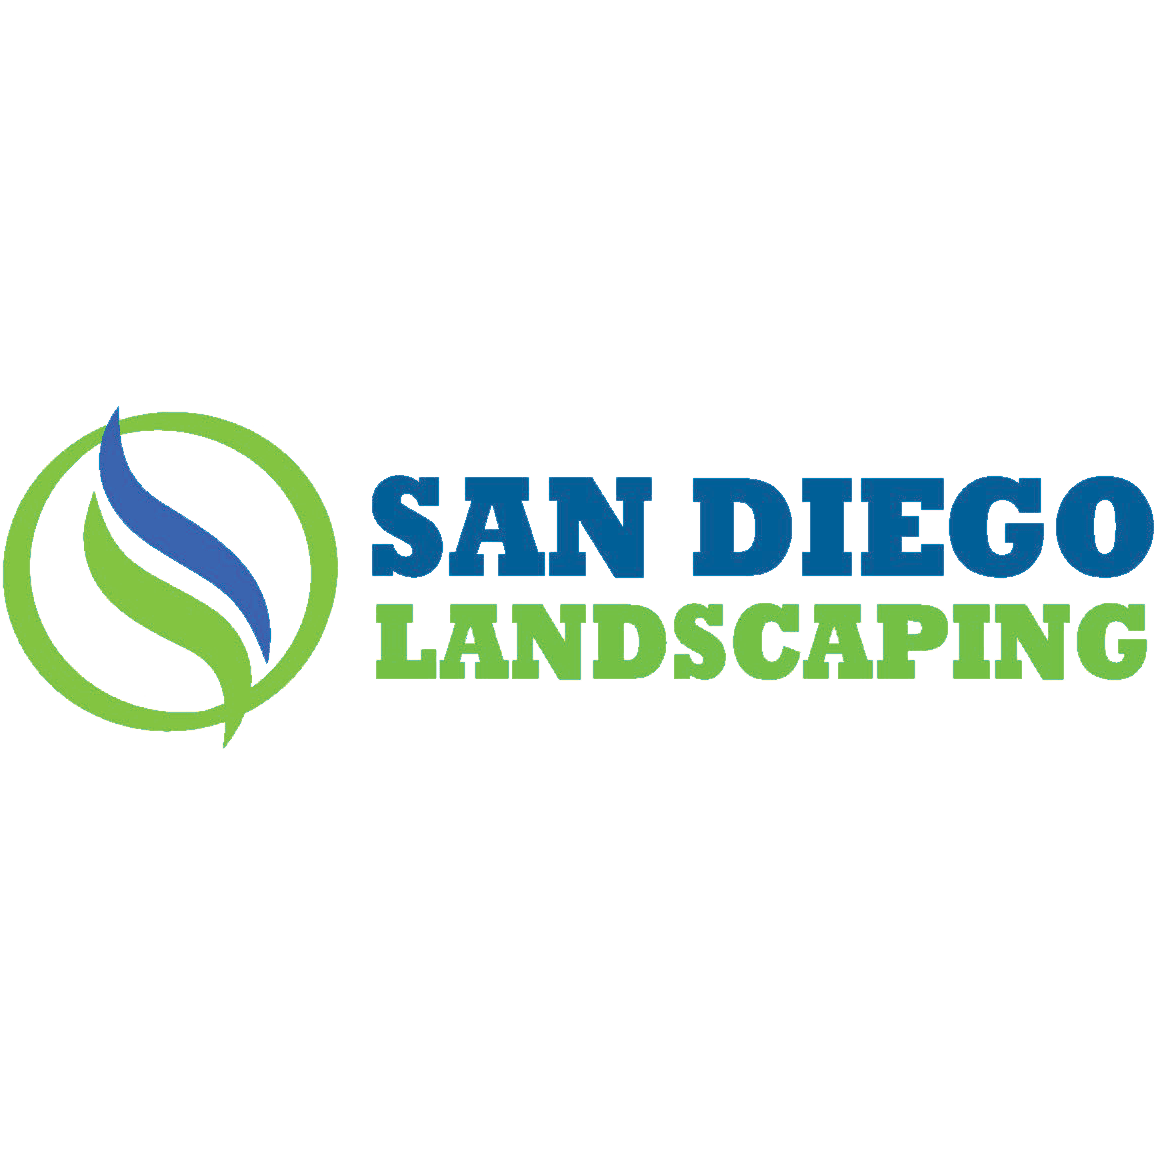 San Diego Landscaping, Inc.